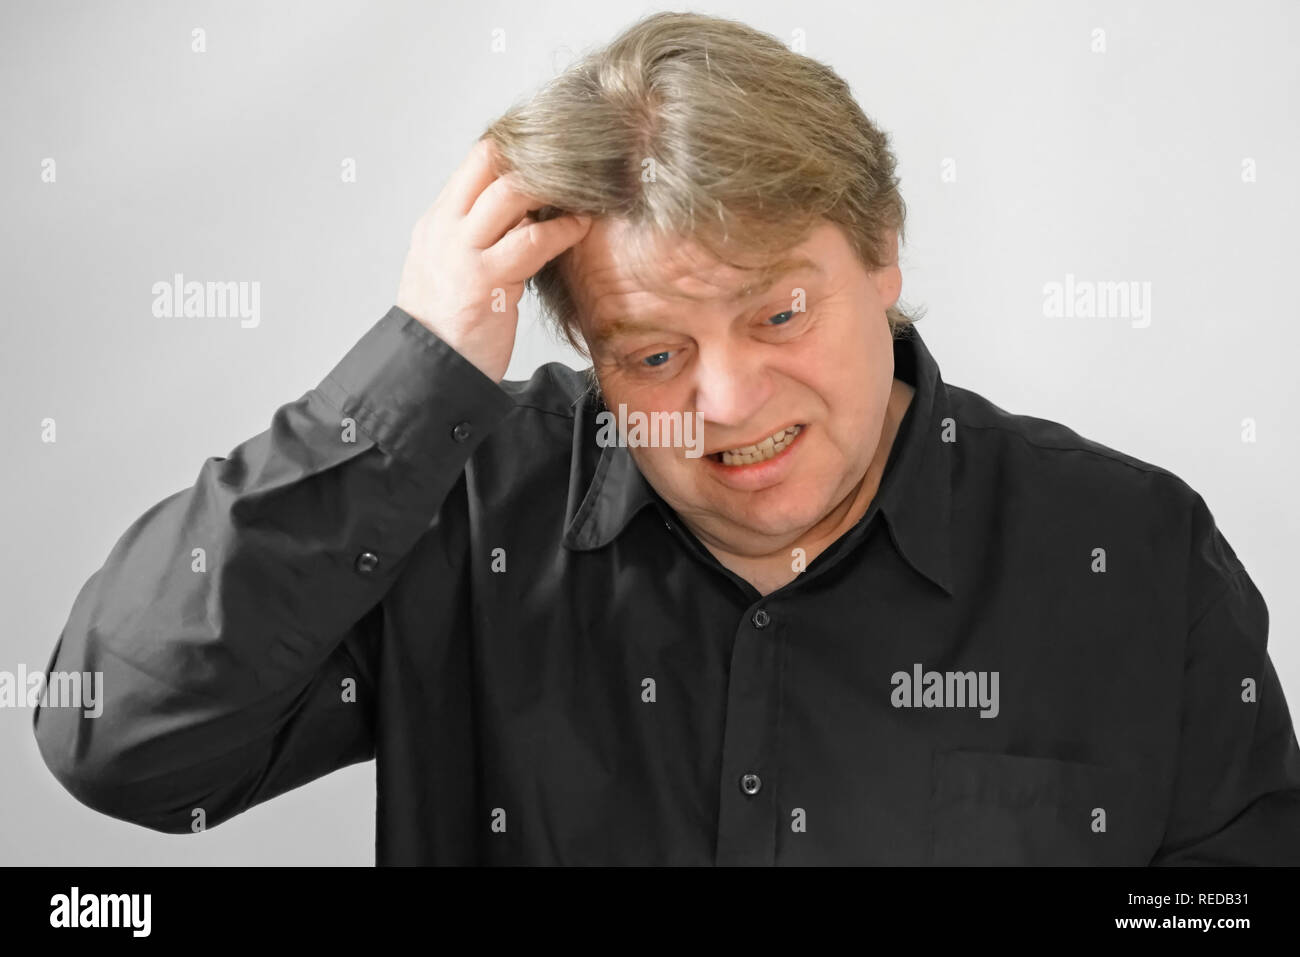 50 year old man with fair skin and blond hair is at a loss. The face shows a lot of facial expressions when thinking. He scratches his head to remembe - Stock Image